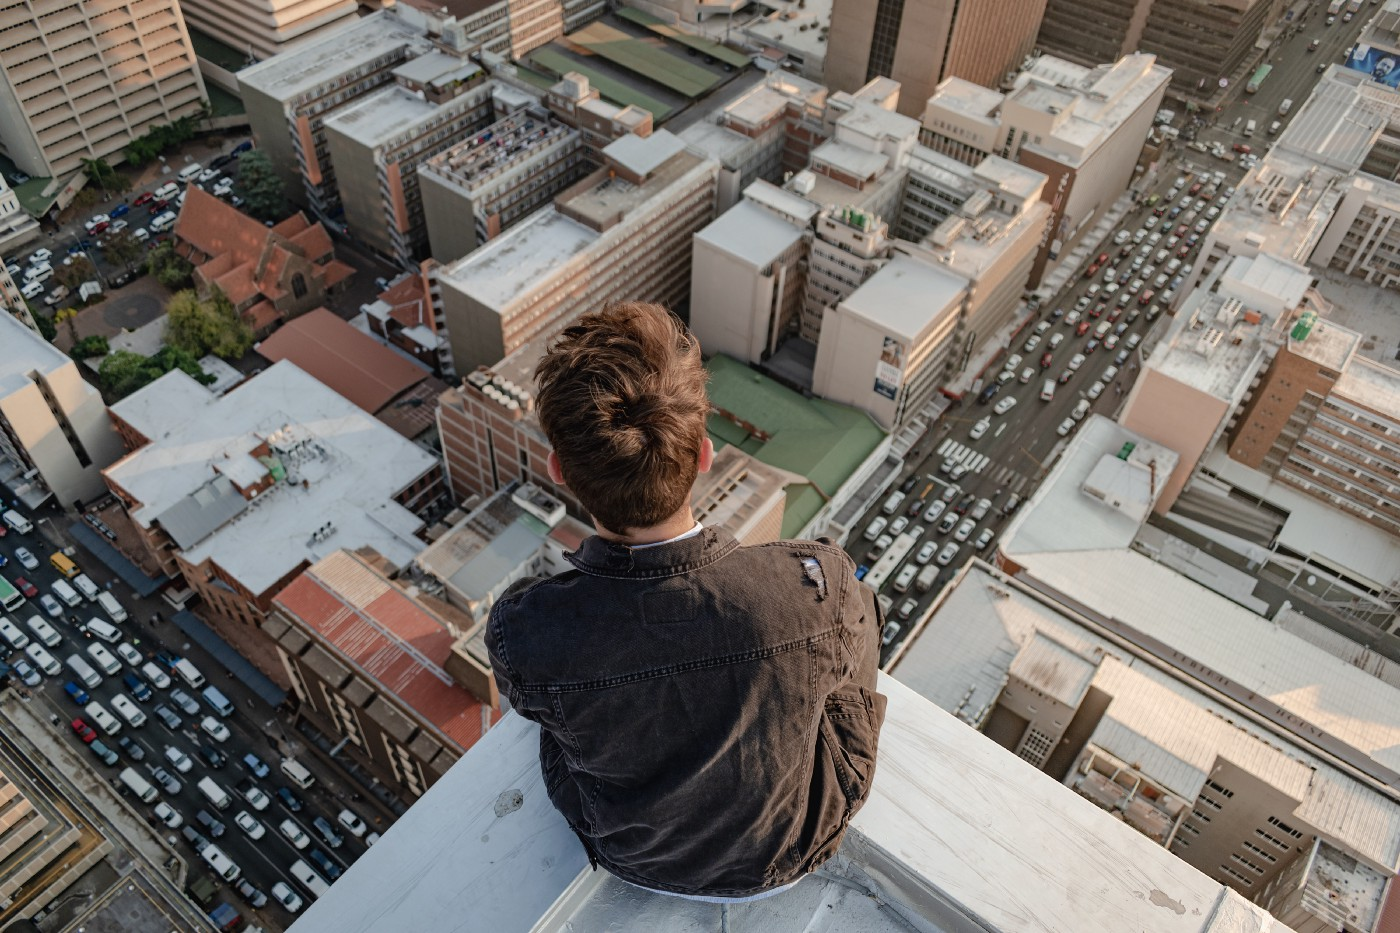 Person sitting on top of skyscraper looking at city